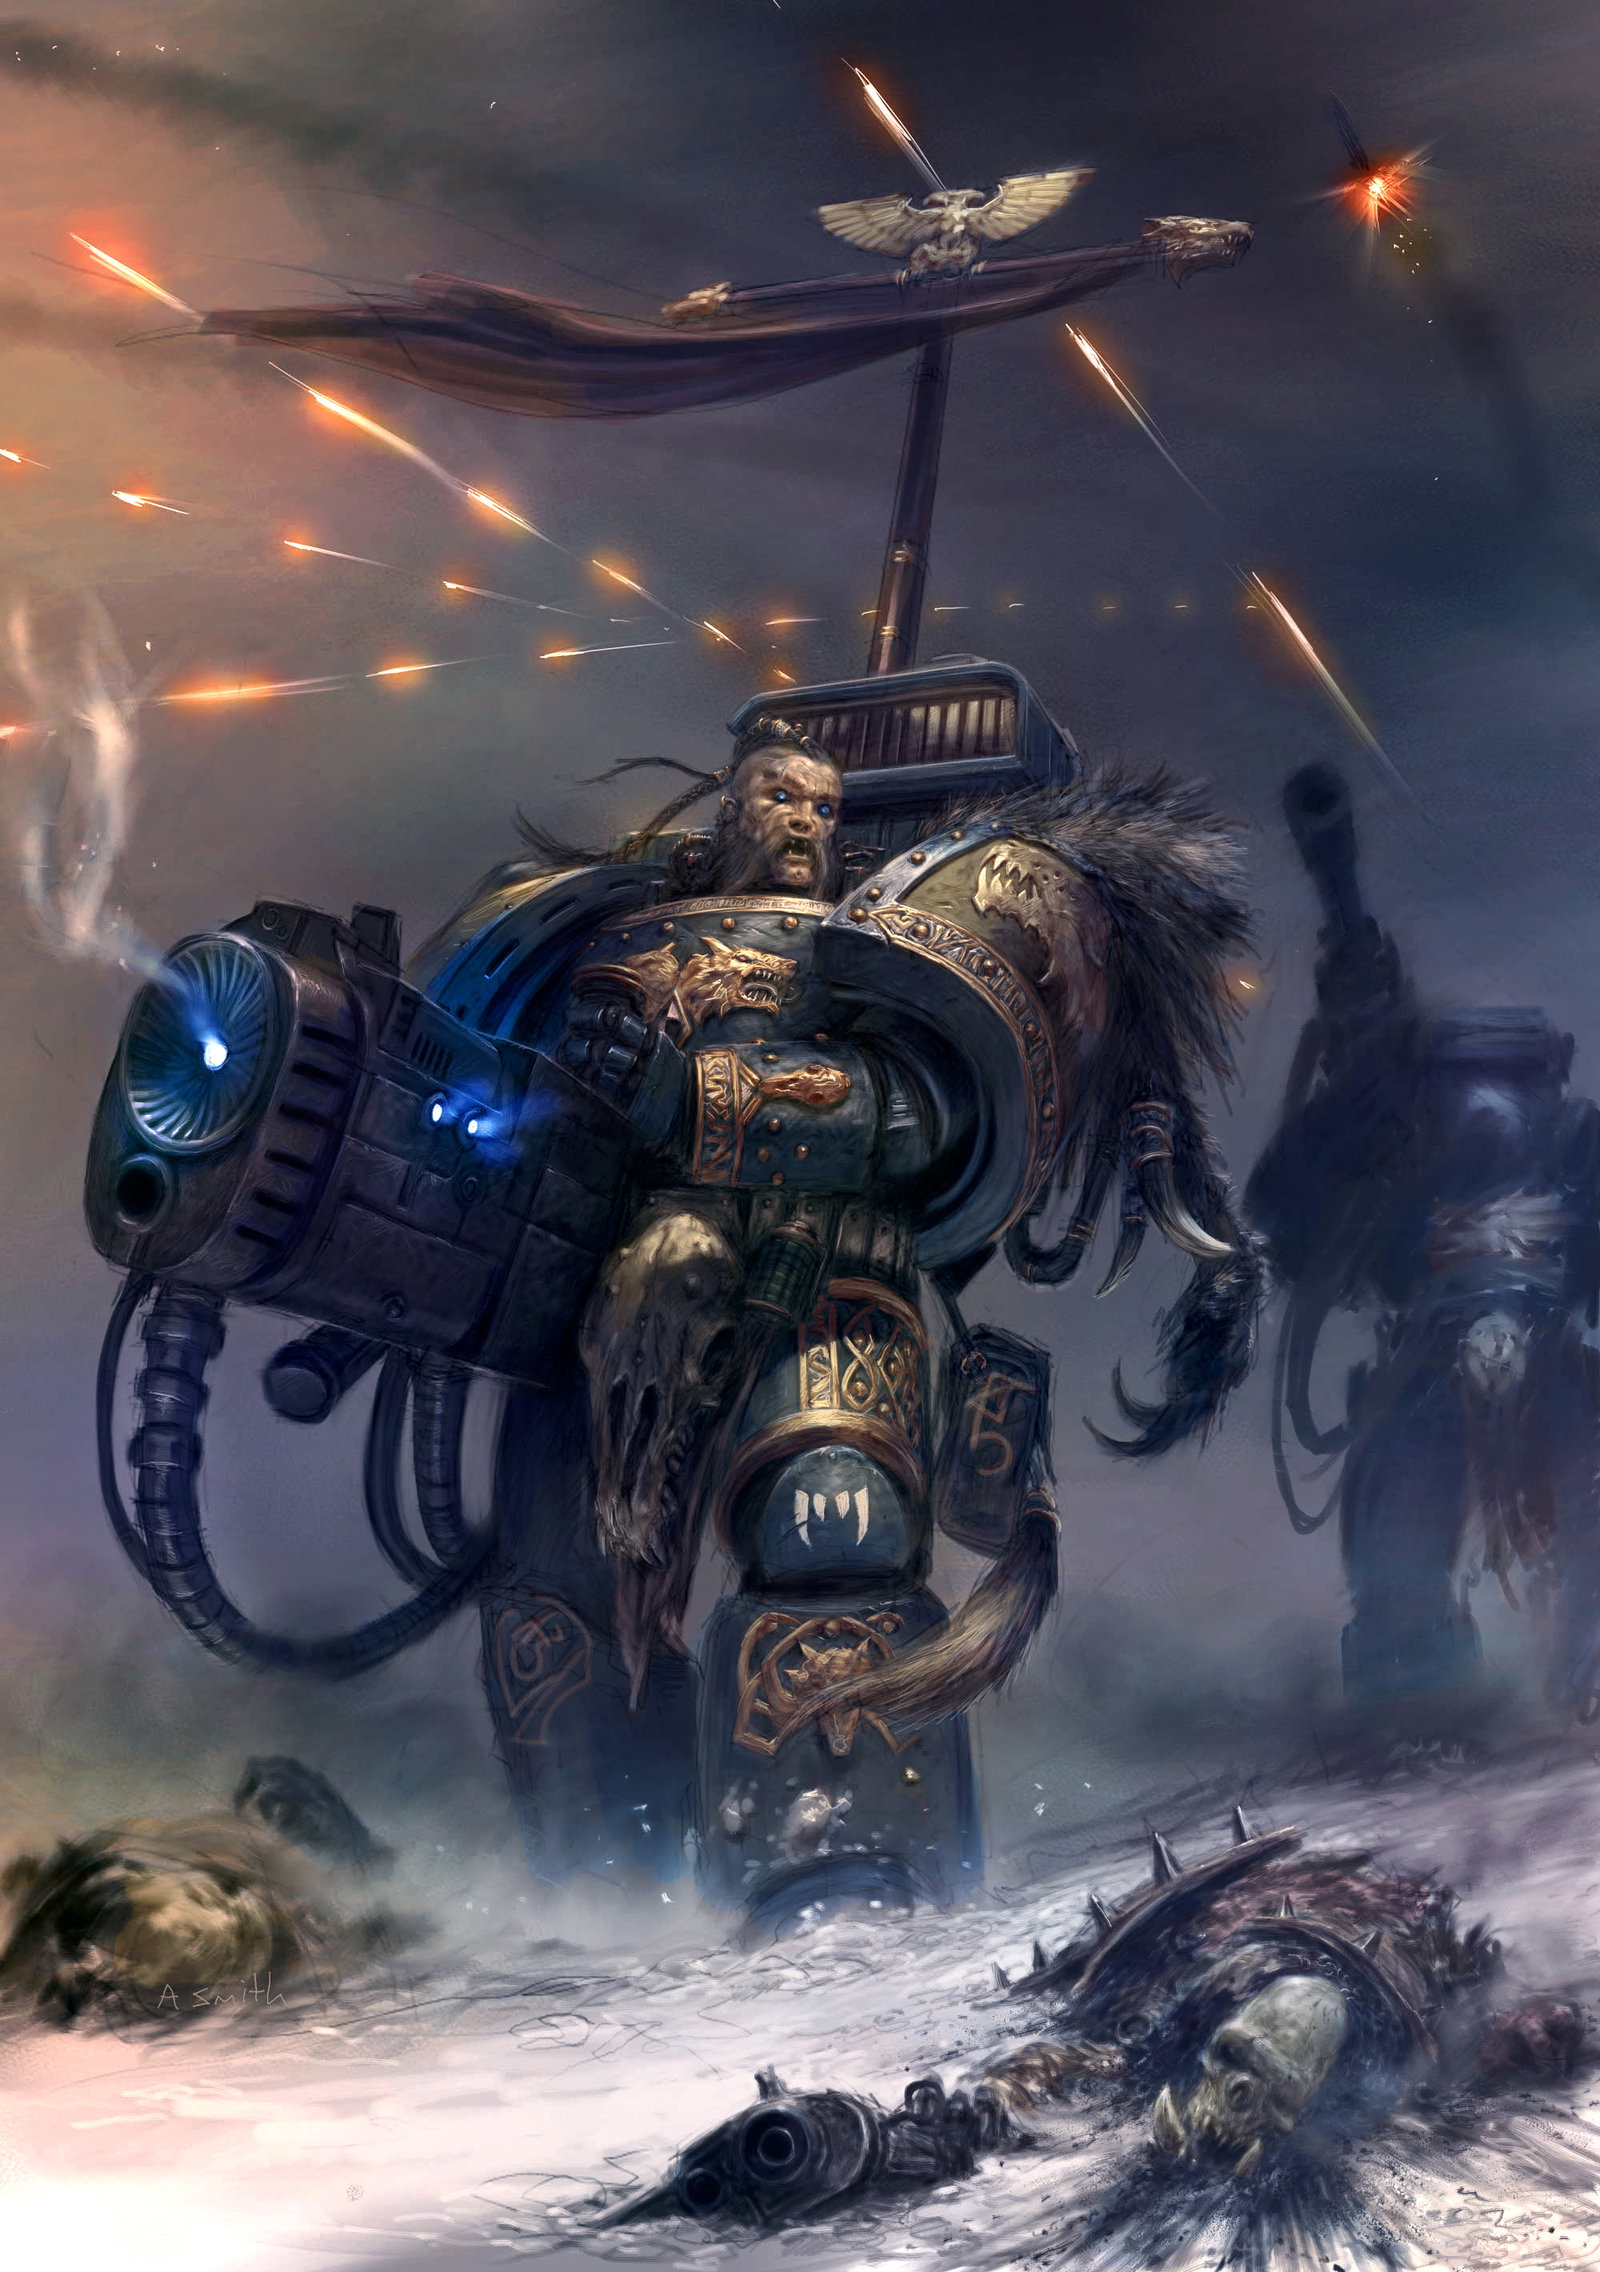 http://images3.wikia.nocookie.net/__cb20110503020103/es.warhammer40k/images/c/ce/Long_Fangs_by_MajesticChicken.jpg